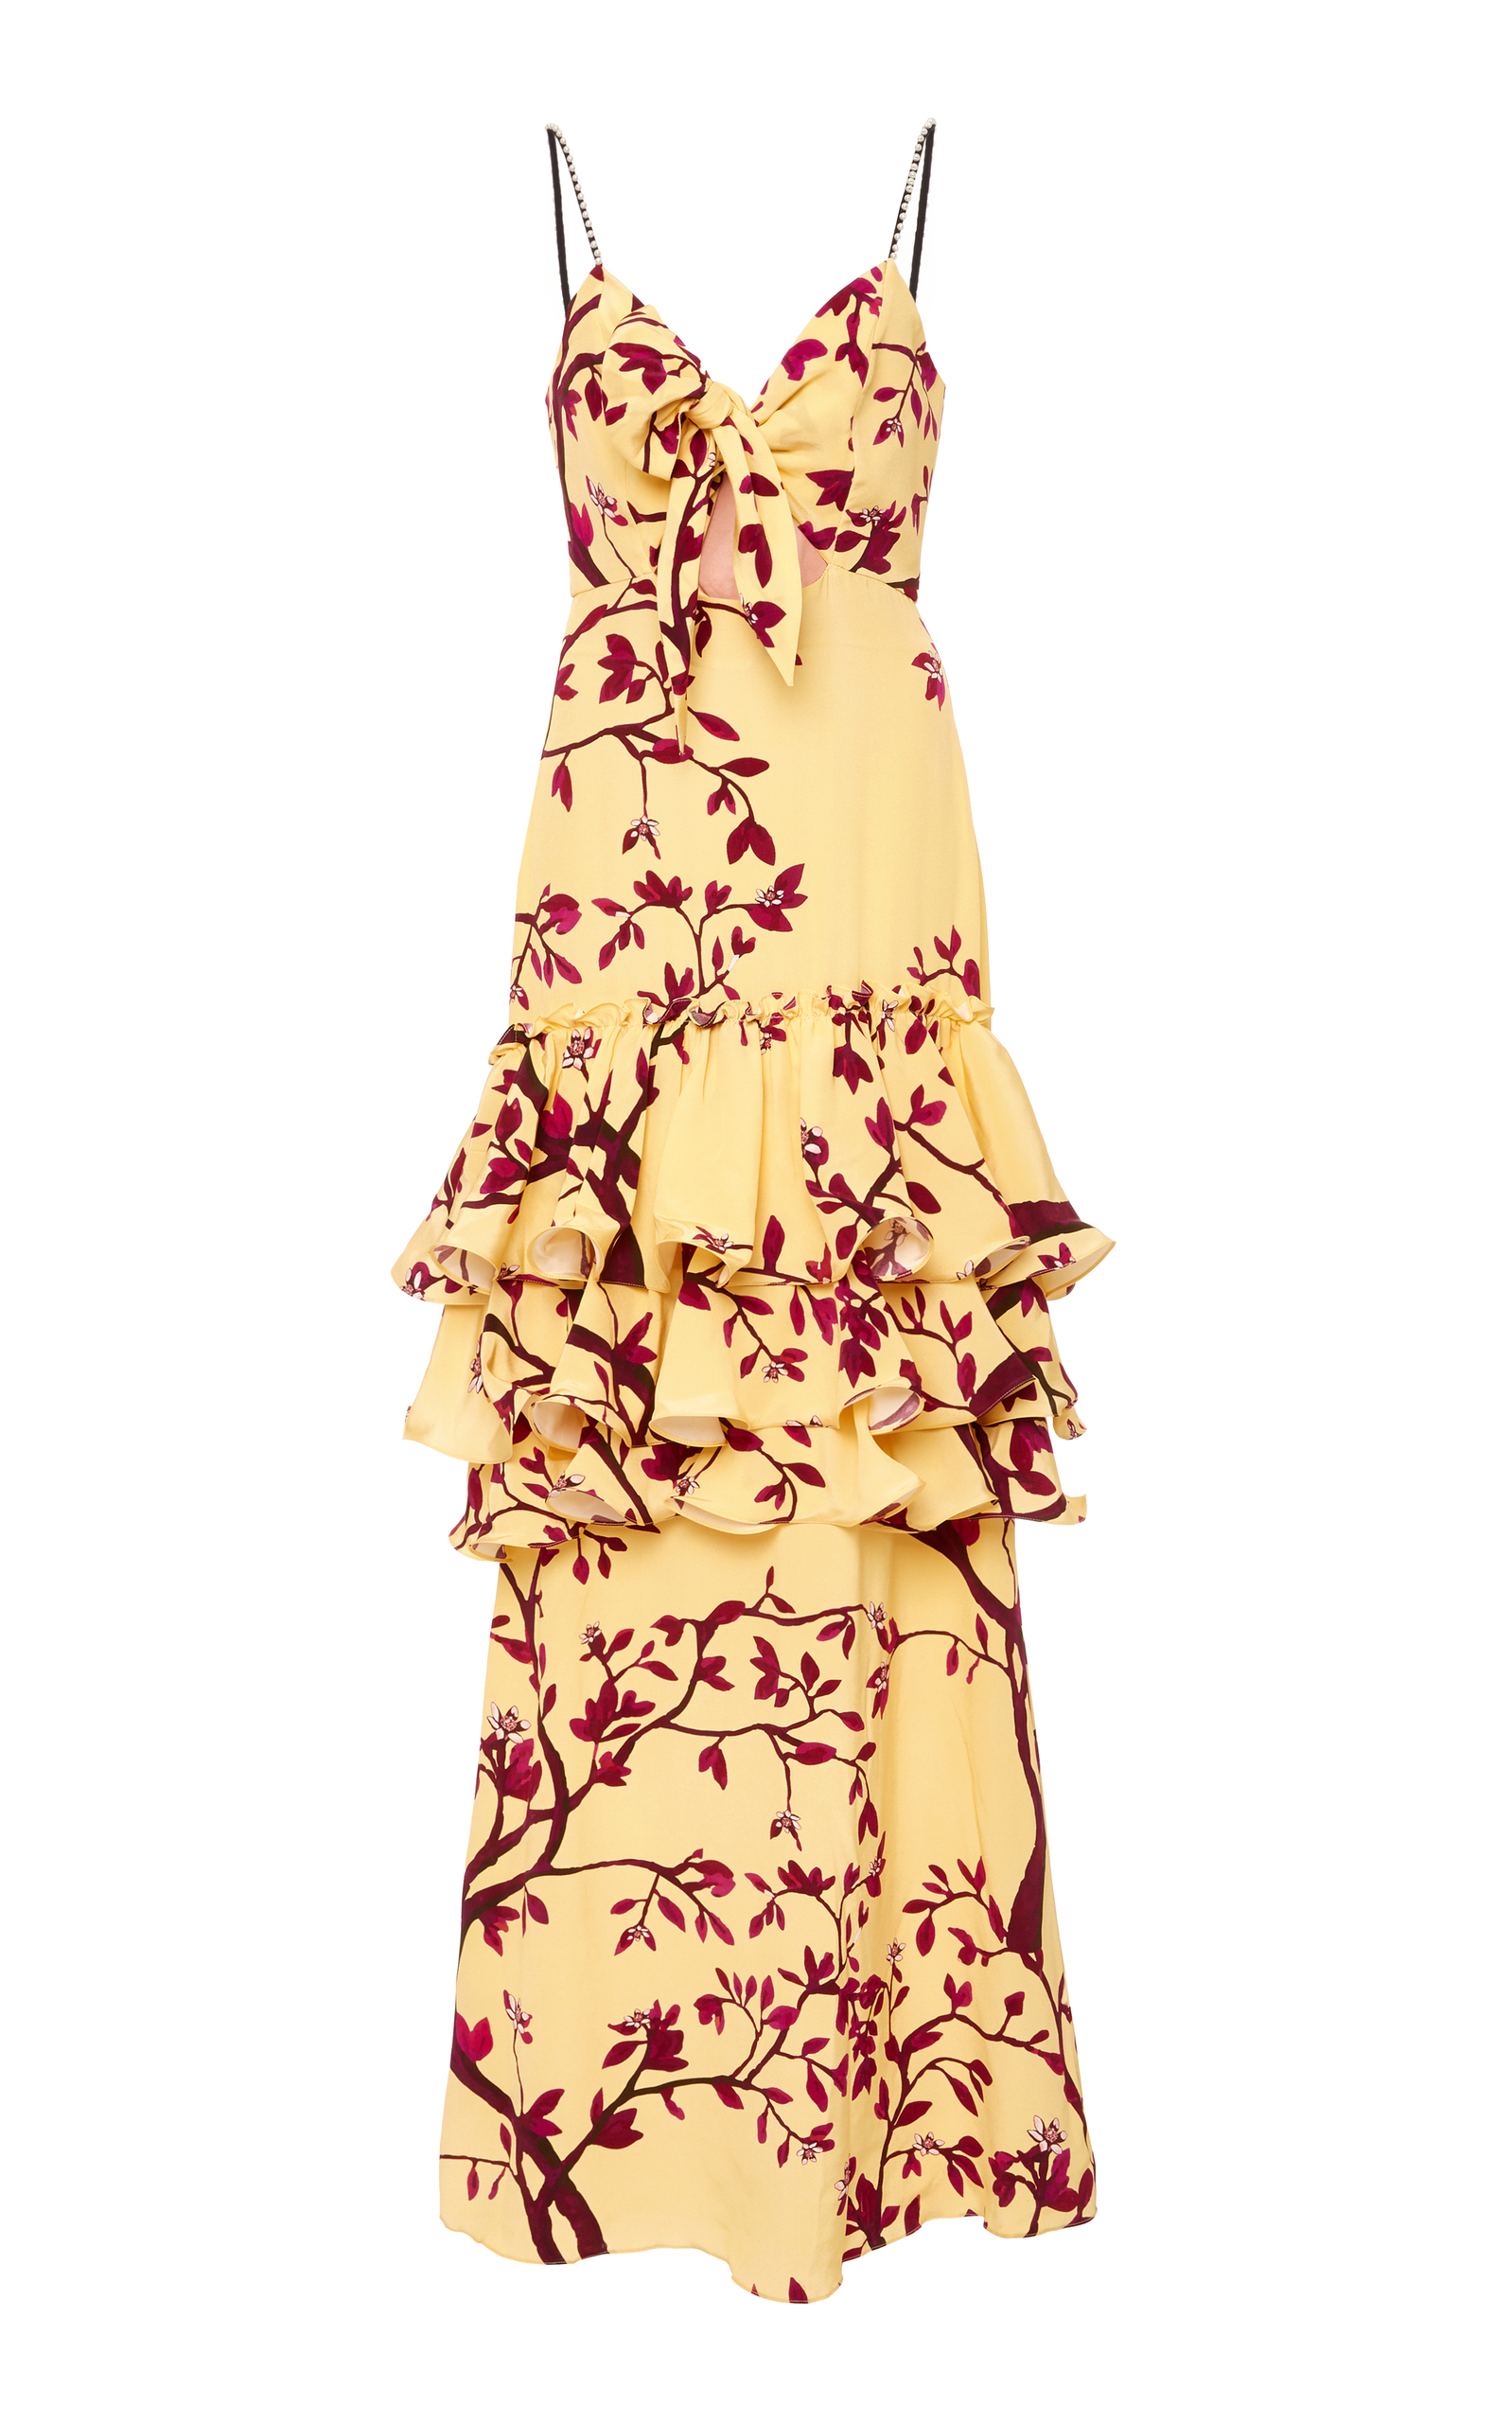 M'O Exclusive The Victorian Gold Rush Silk Dress